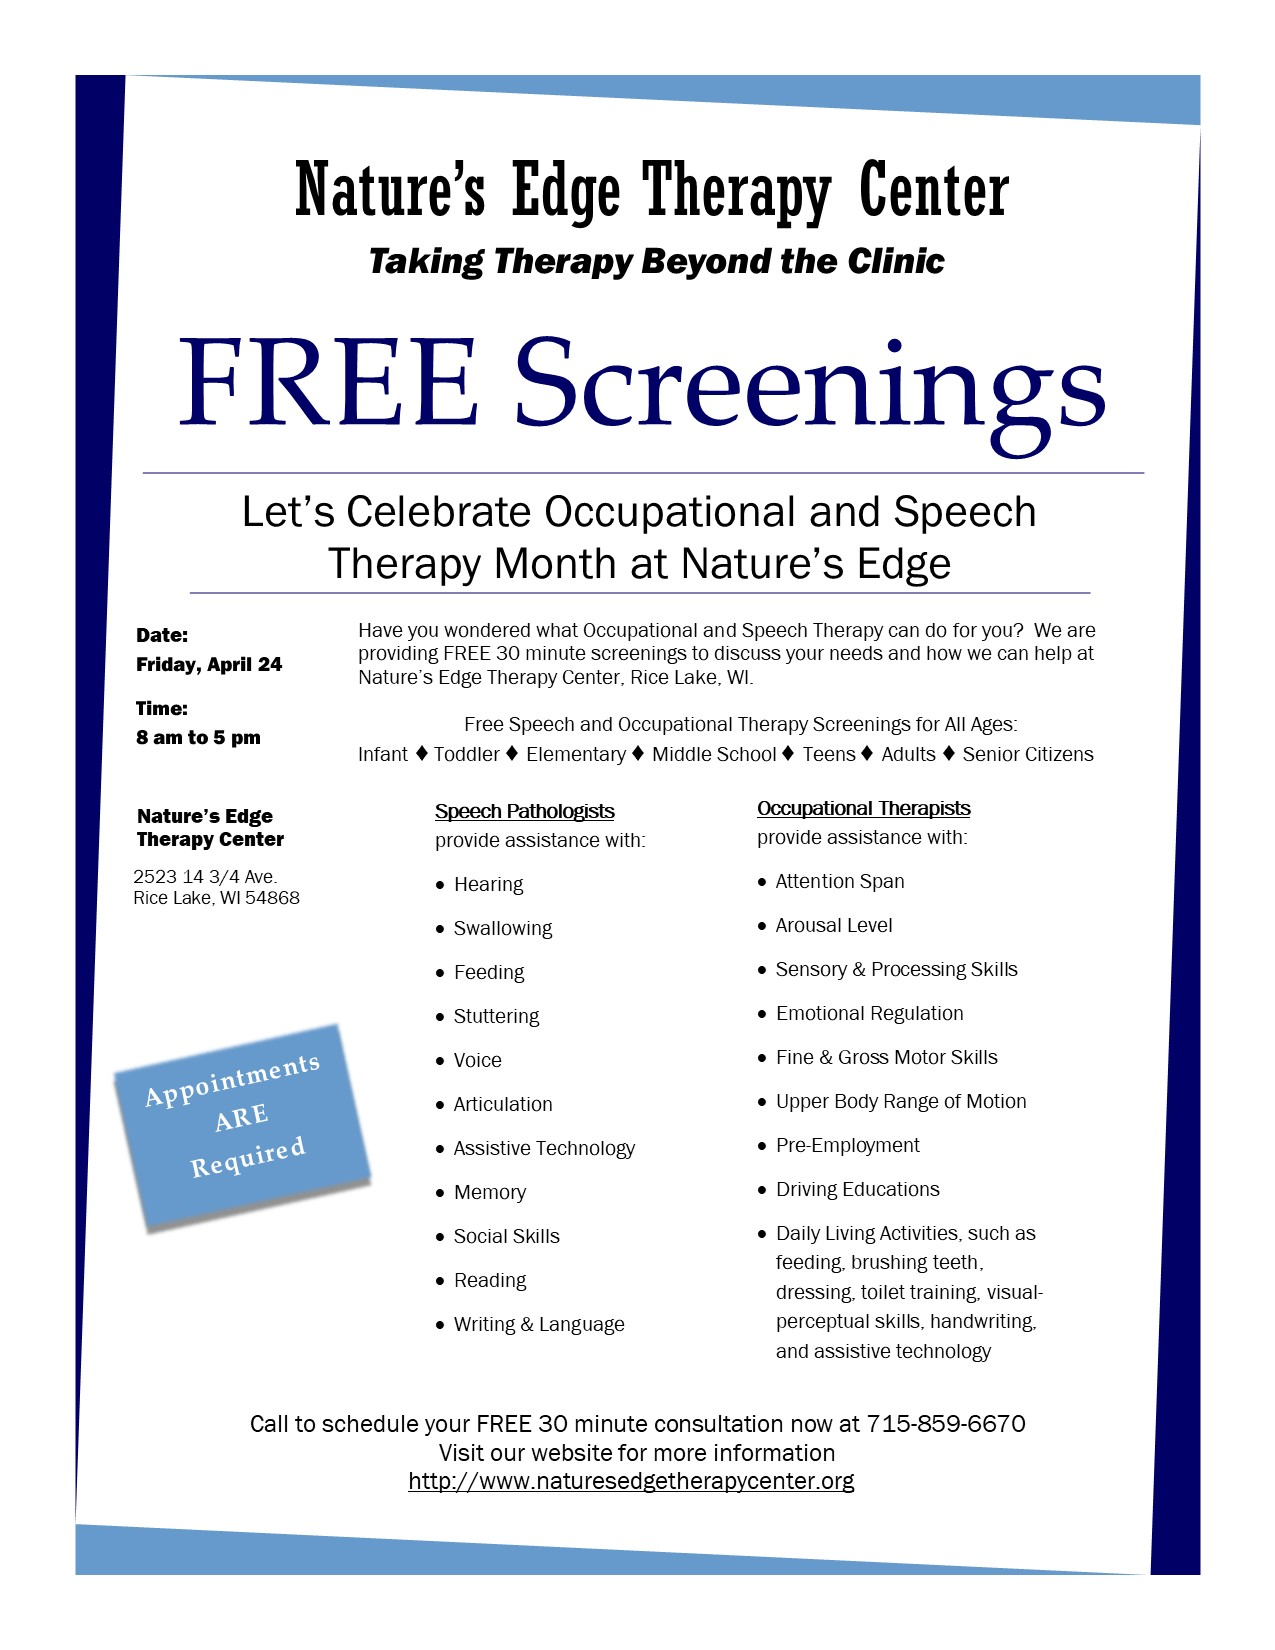 Nature's Edge Therapy Center April 2020 Free screening clinic flyer